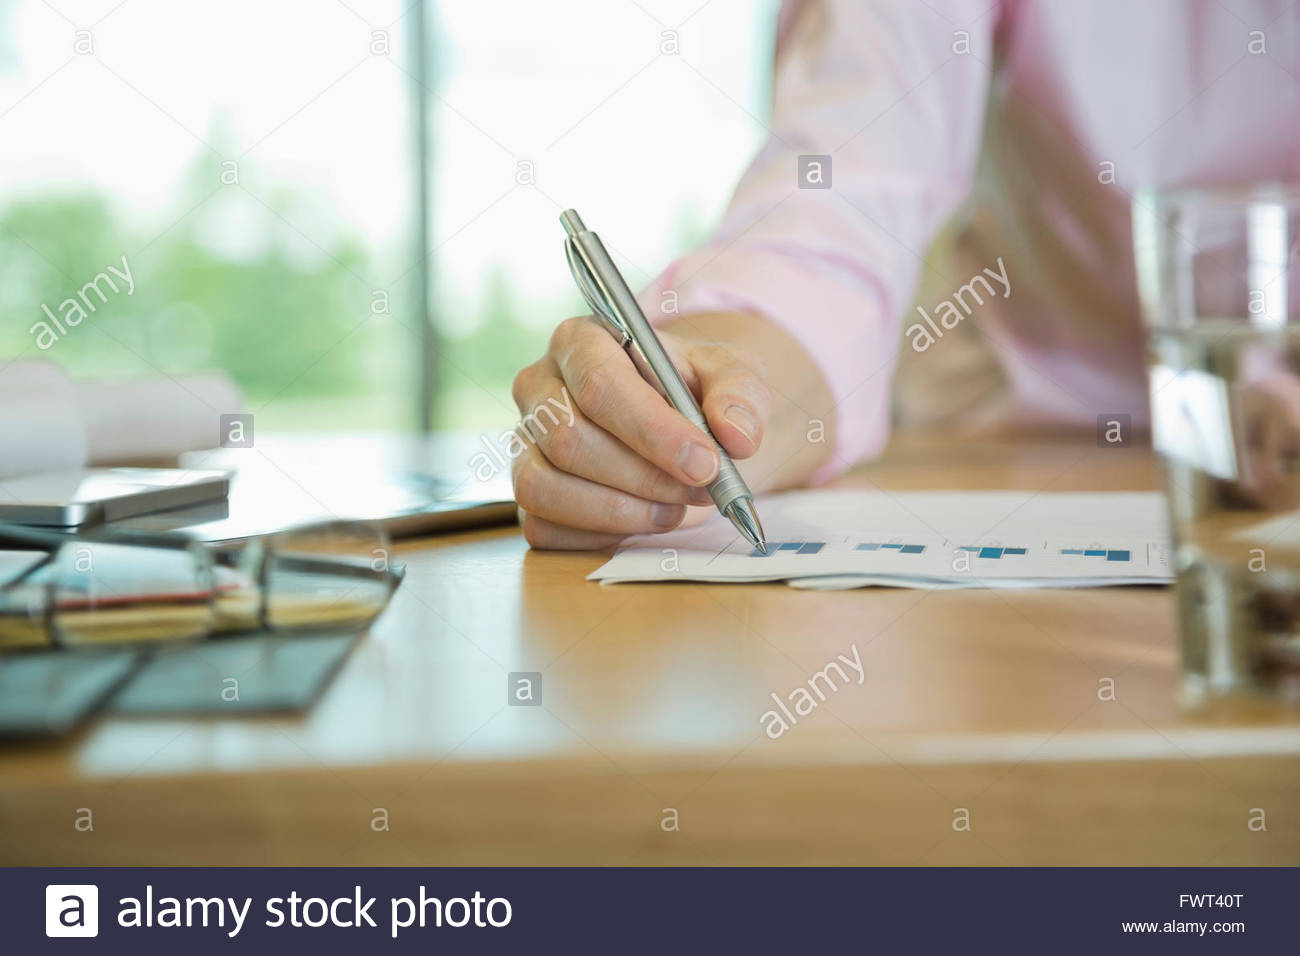 Cropped image of individual analyzing bar graph - Stock Image